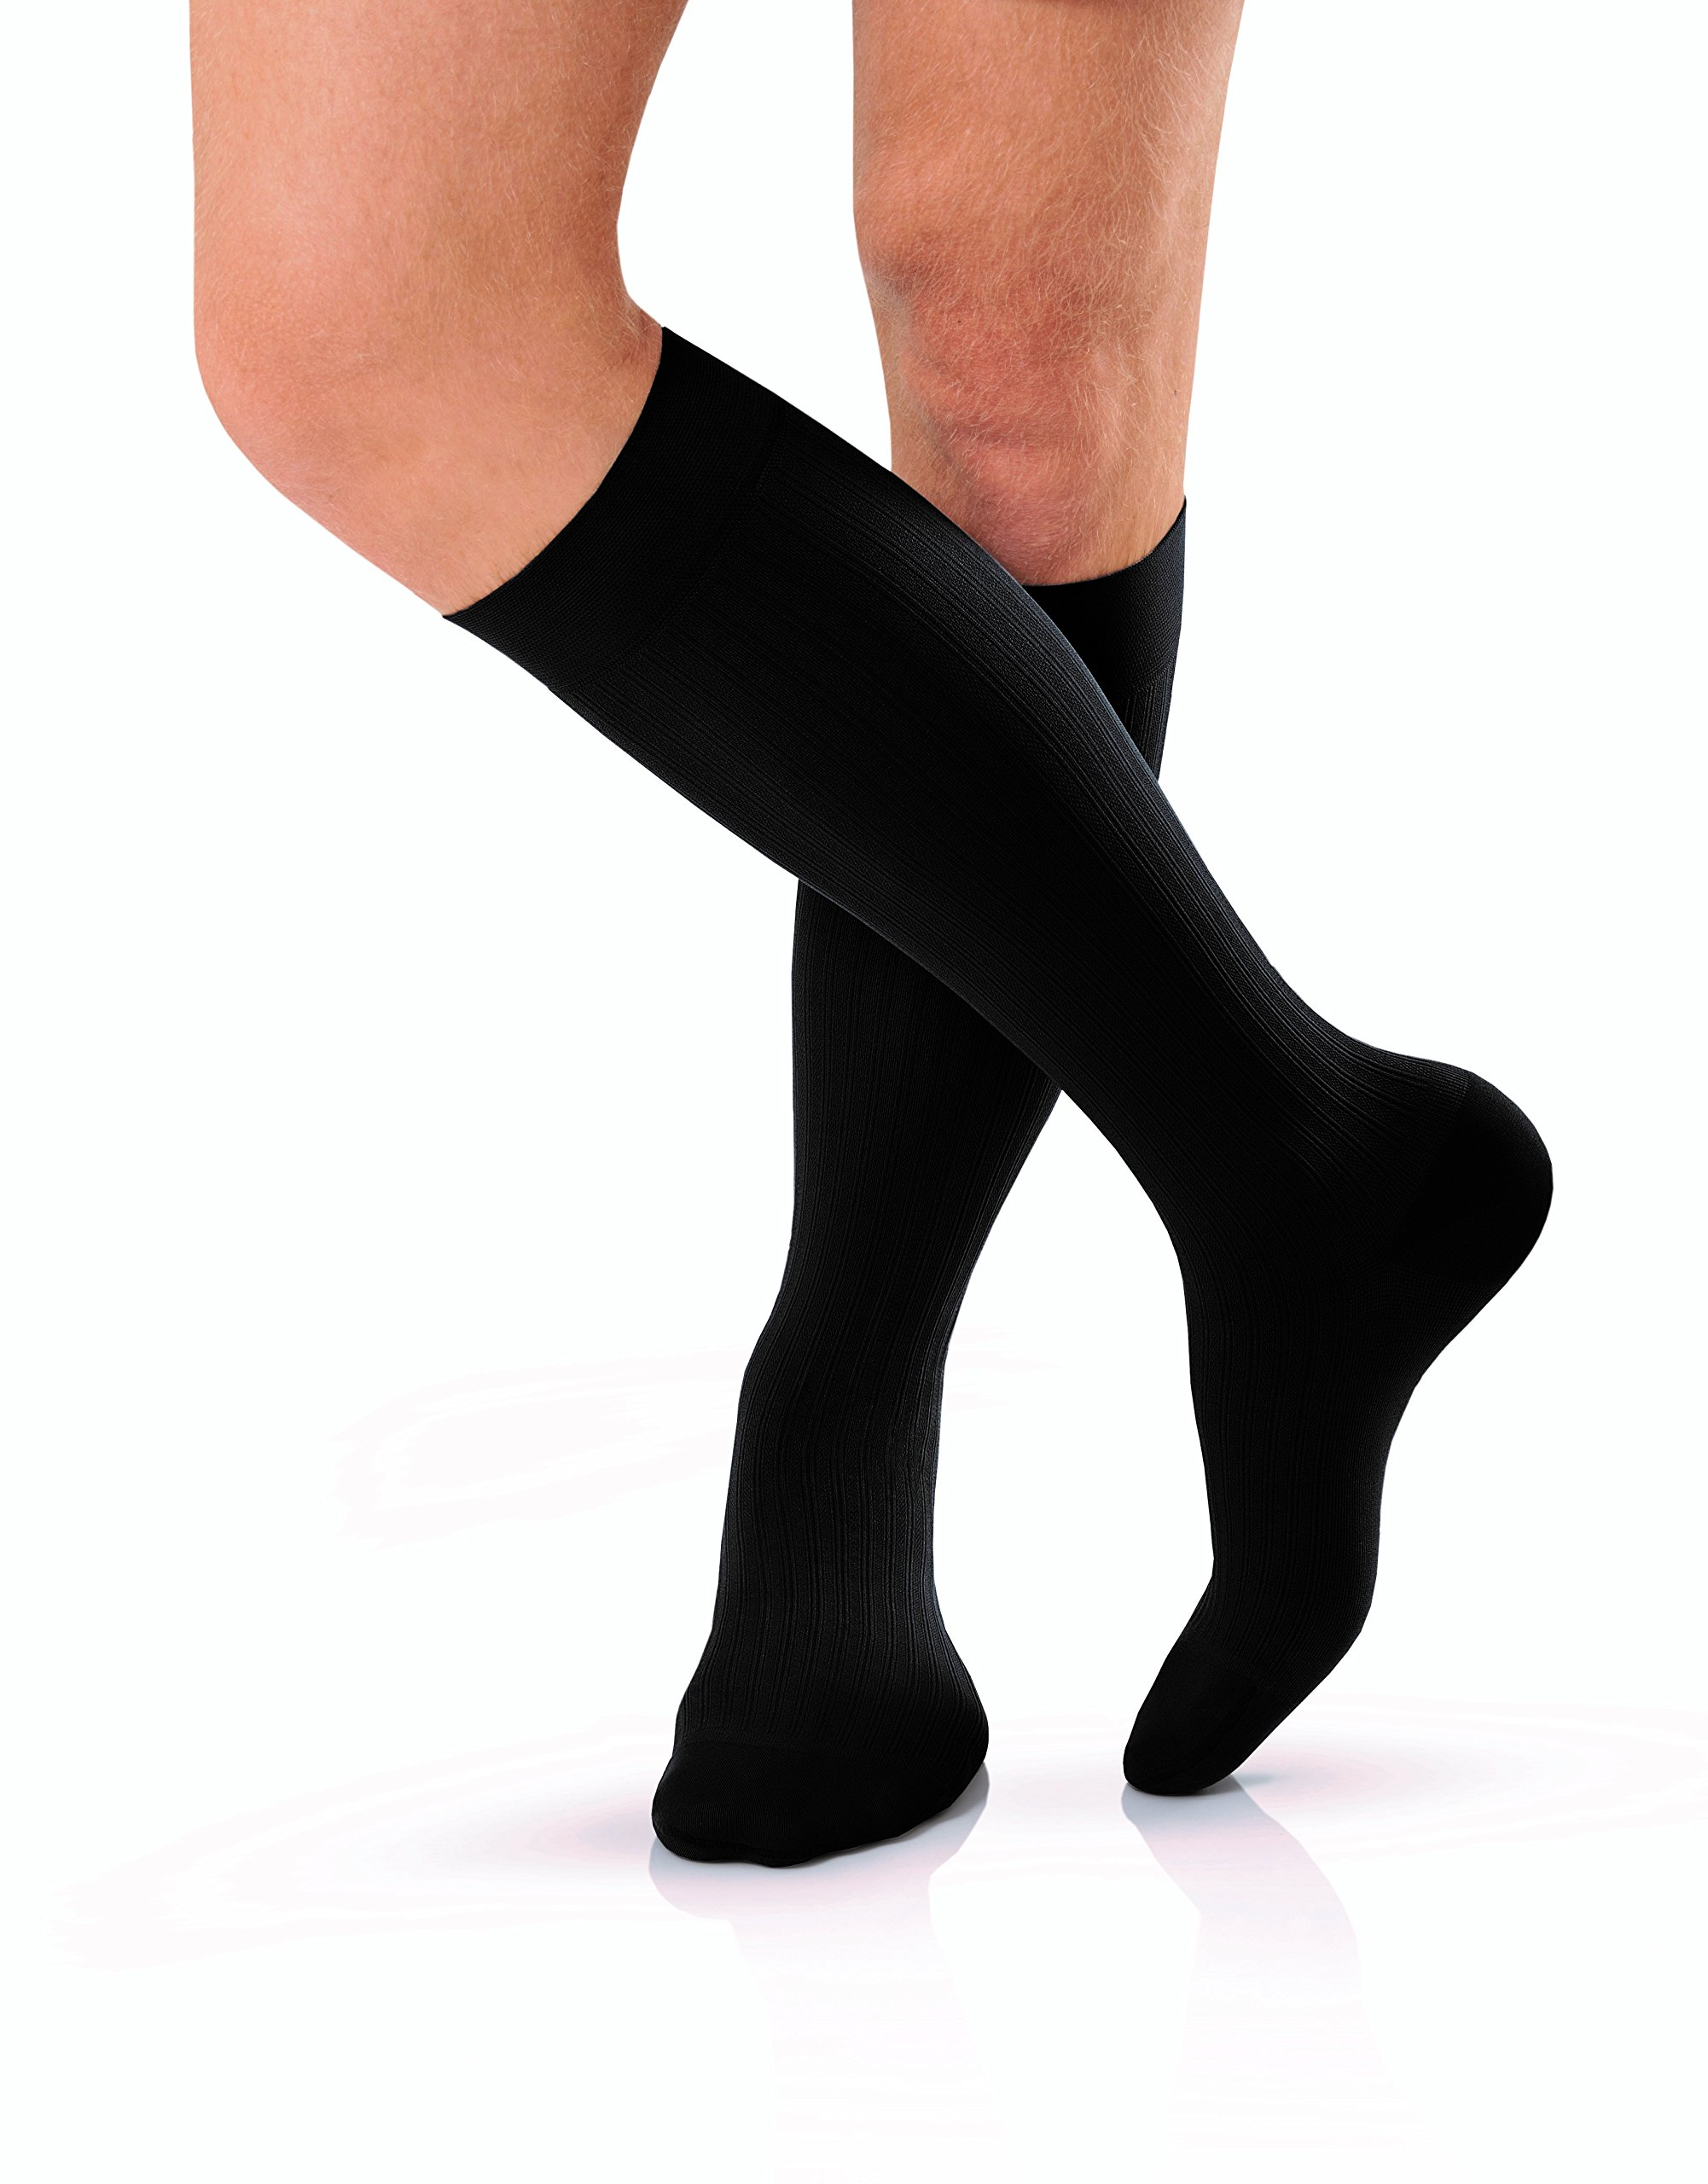 JOBST forMen Knee High 20-30 mmHg Ribbed Dress Compression Socks, Closed Toe, X-Large Full Calf, Black